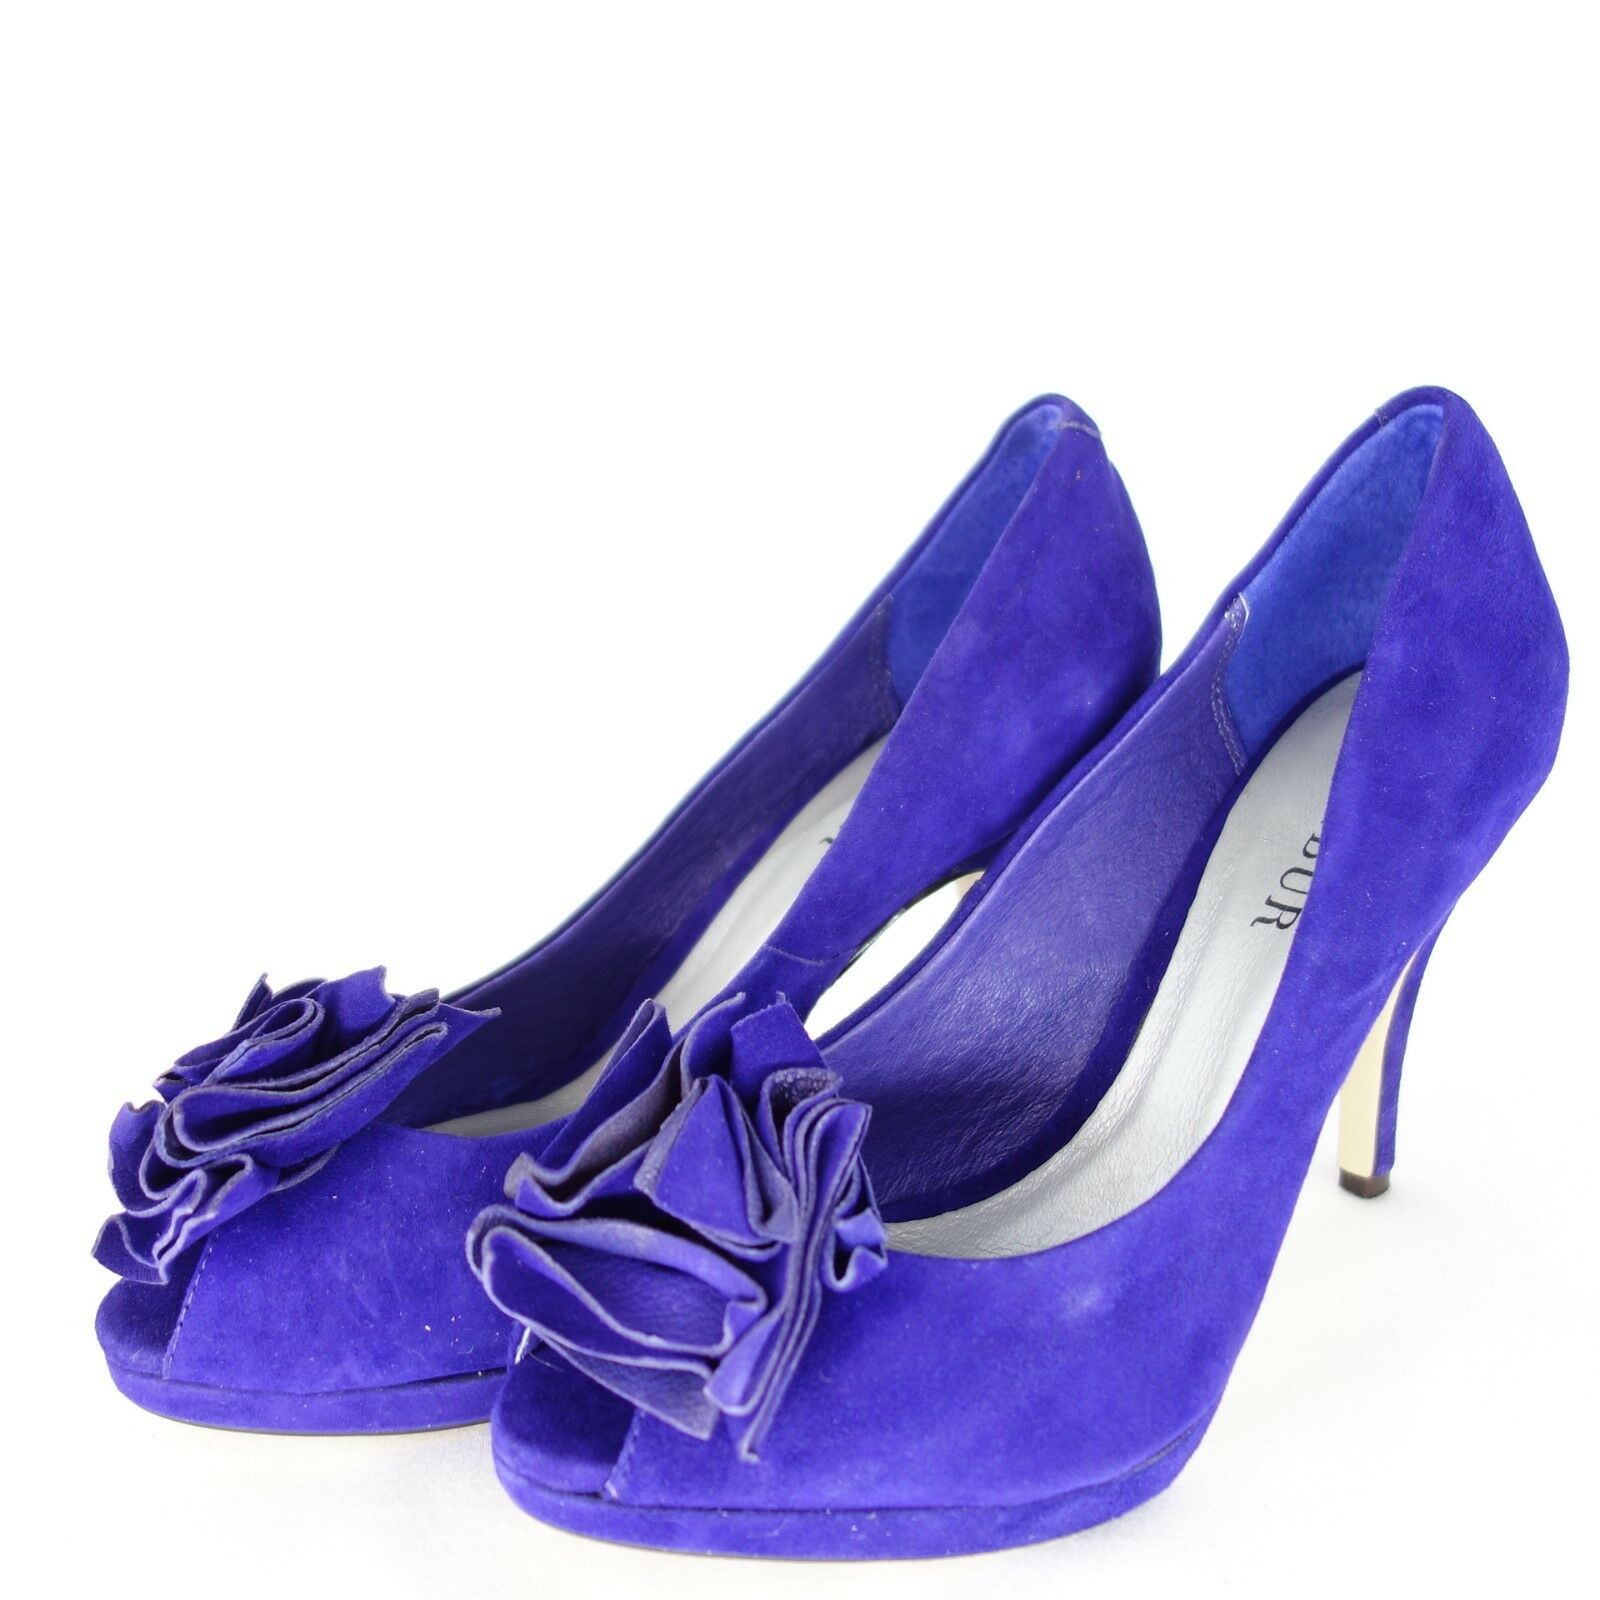 Menbur Women's Pumps shoes shoes shoes Size 39 Purple bluee Leather Suede Peep Toe Np 99 New 0d4a87